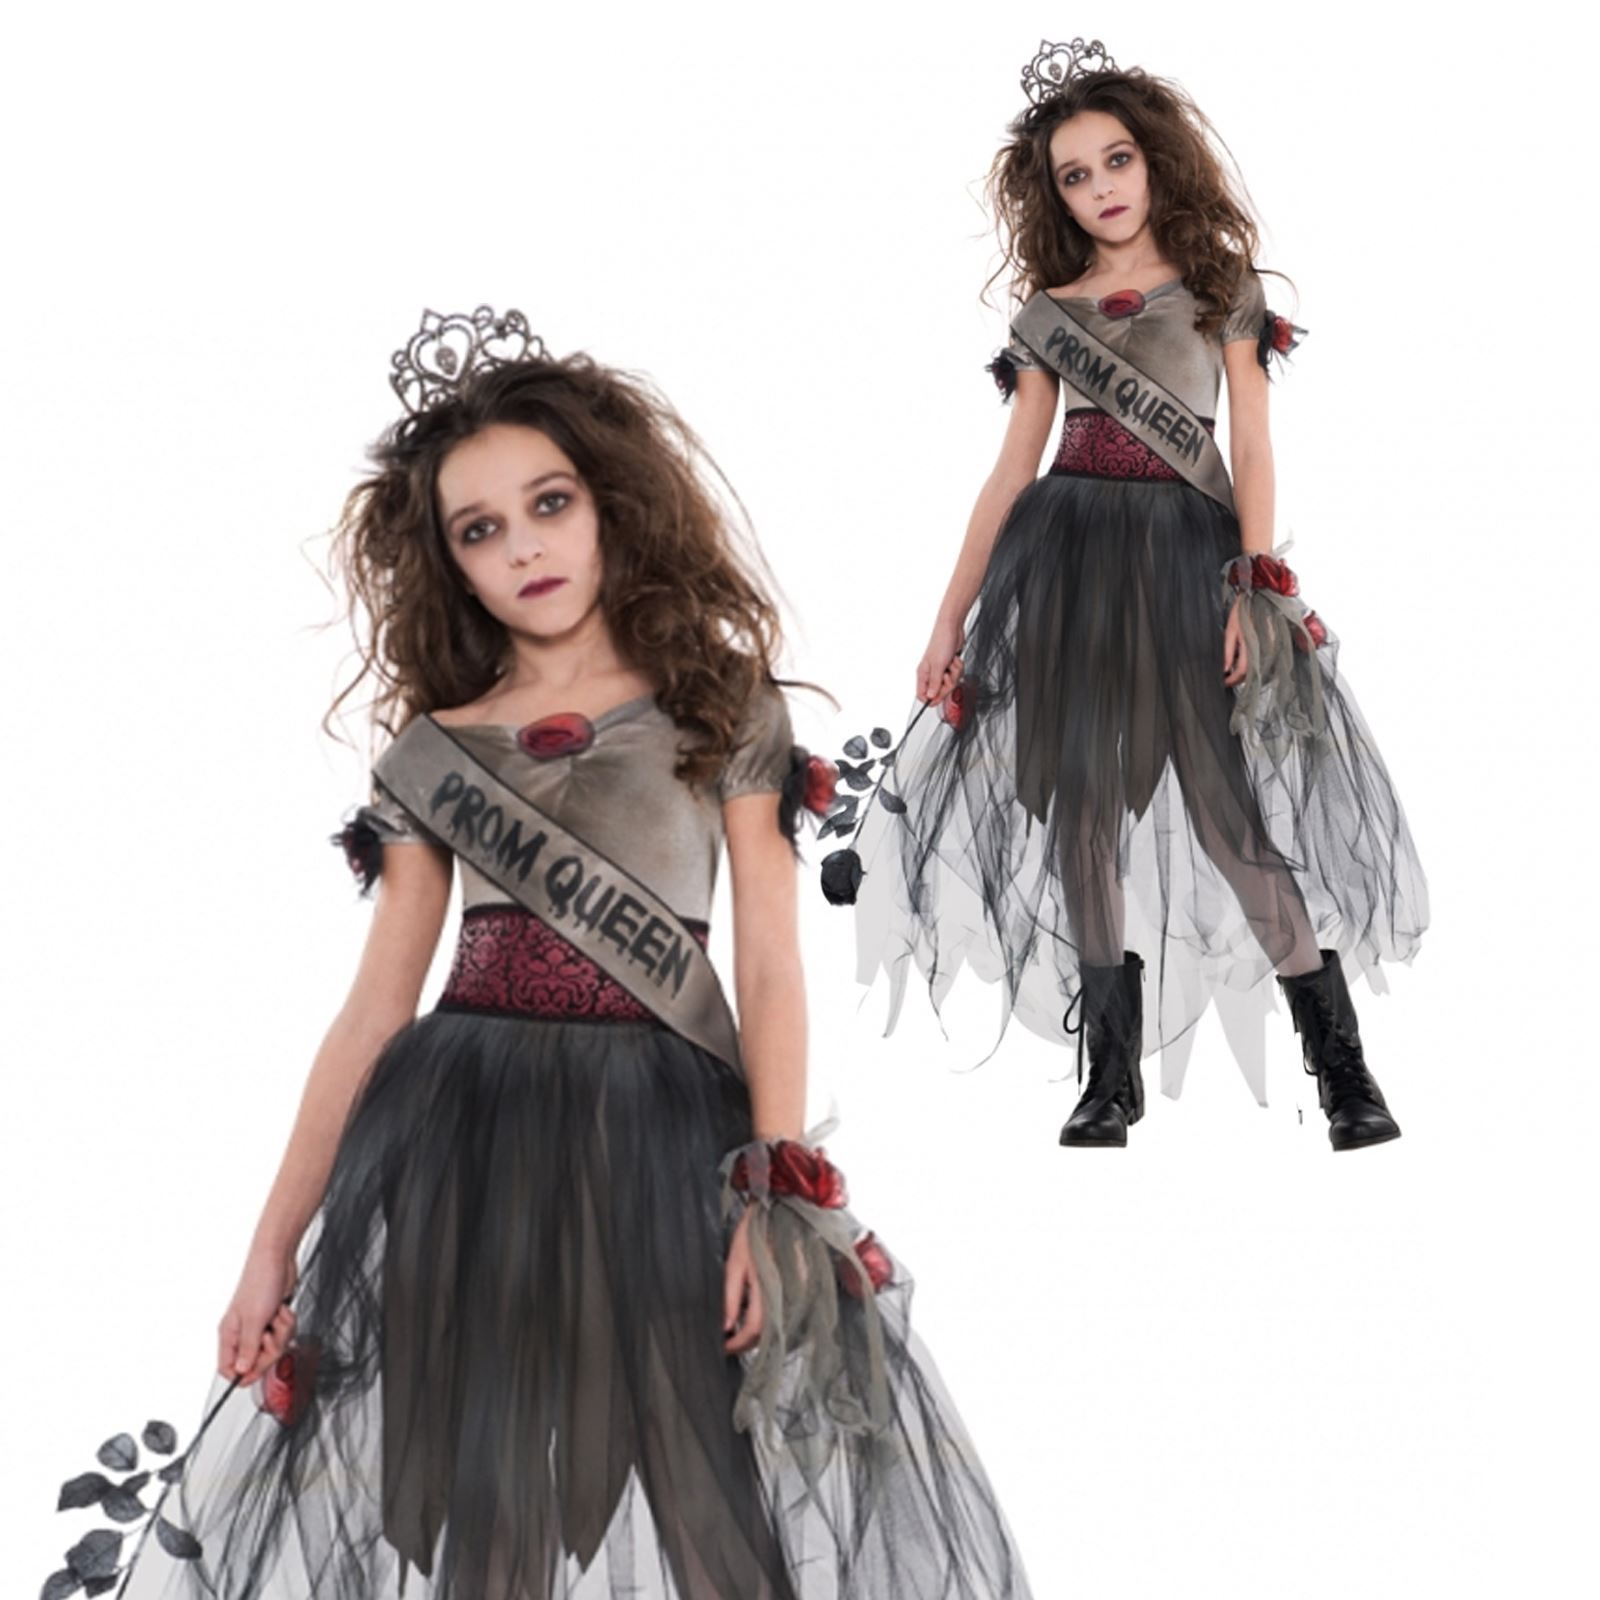 m dchen teen kinder zombie prom queen halloween zombie. Black Bedroom Furniture Sets. Home Design Ideas